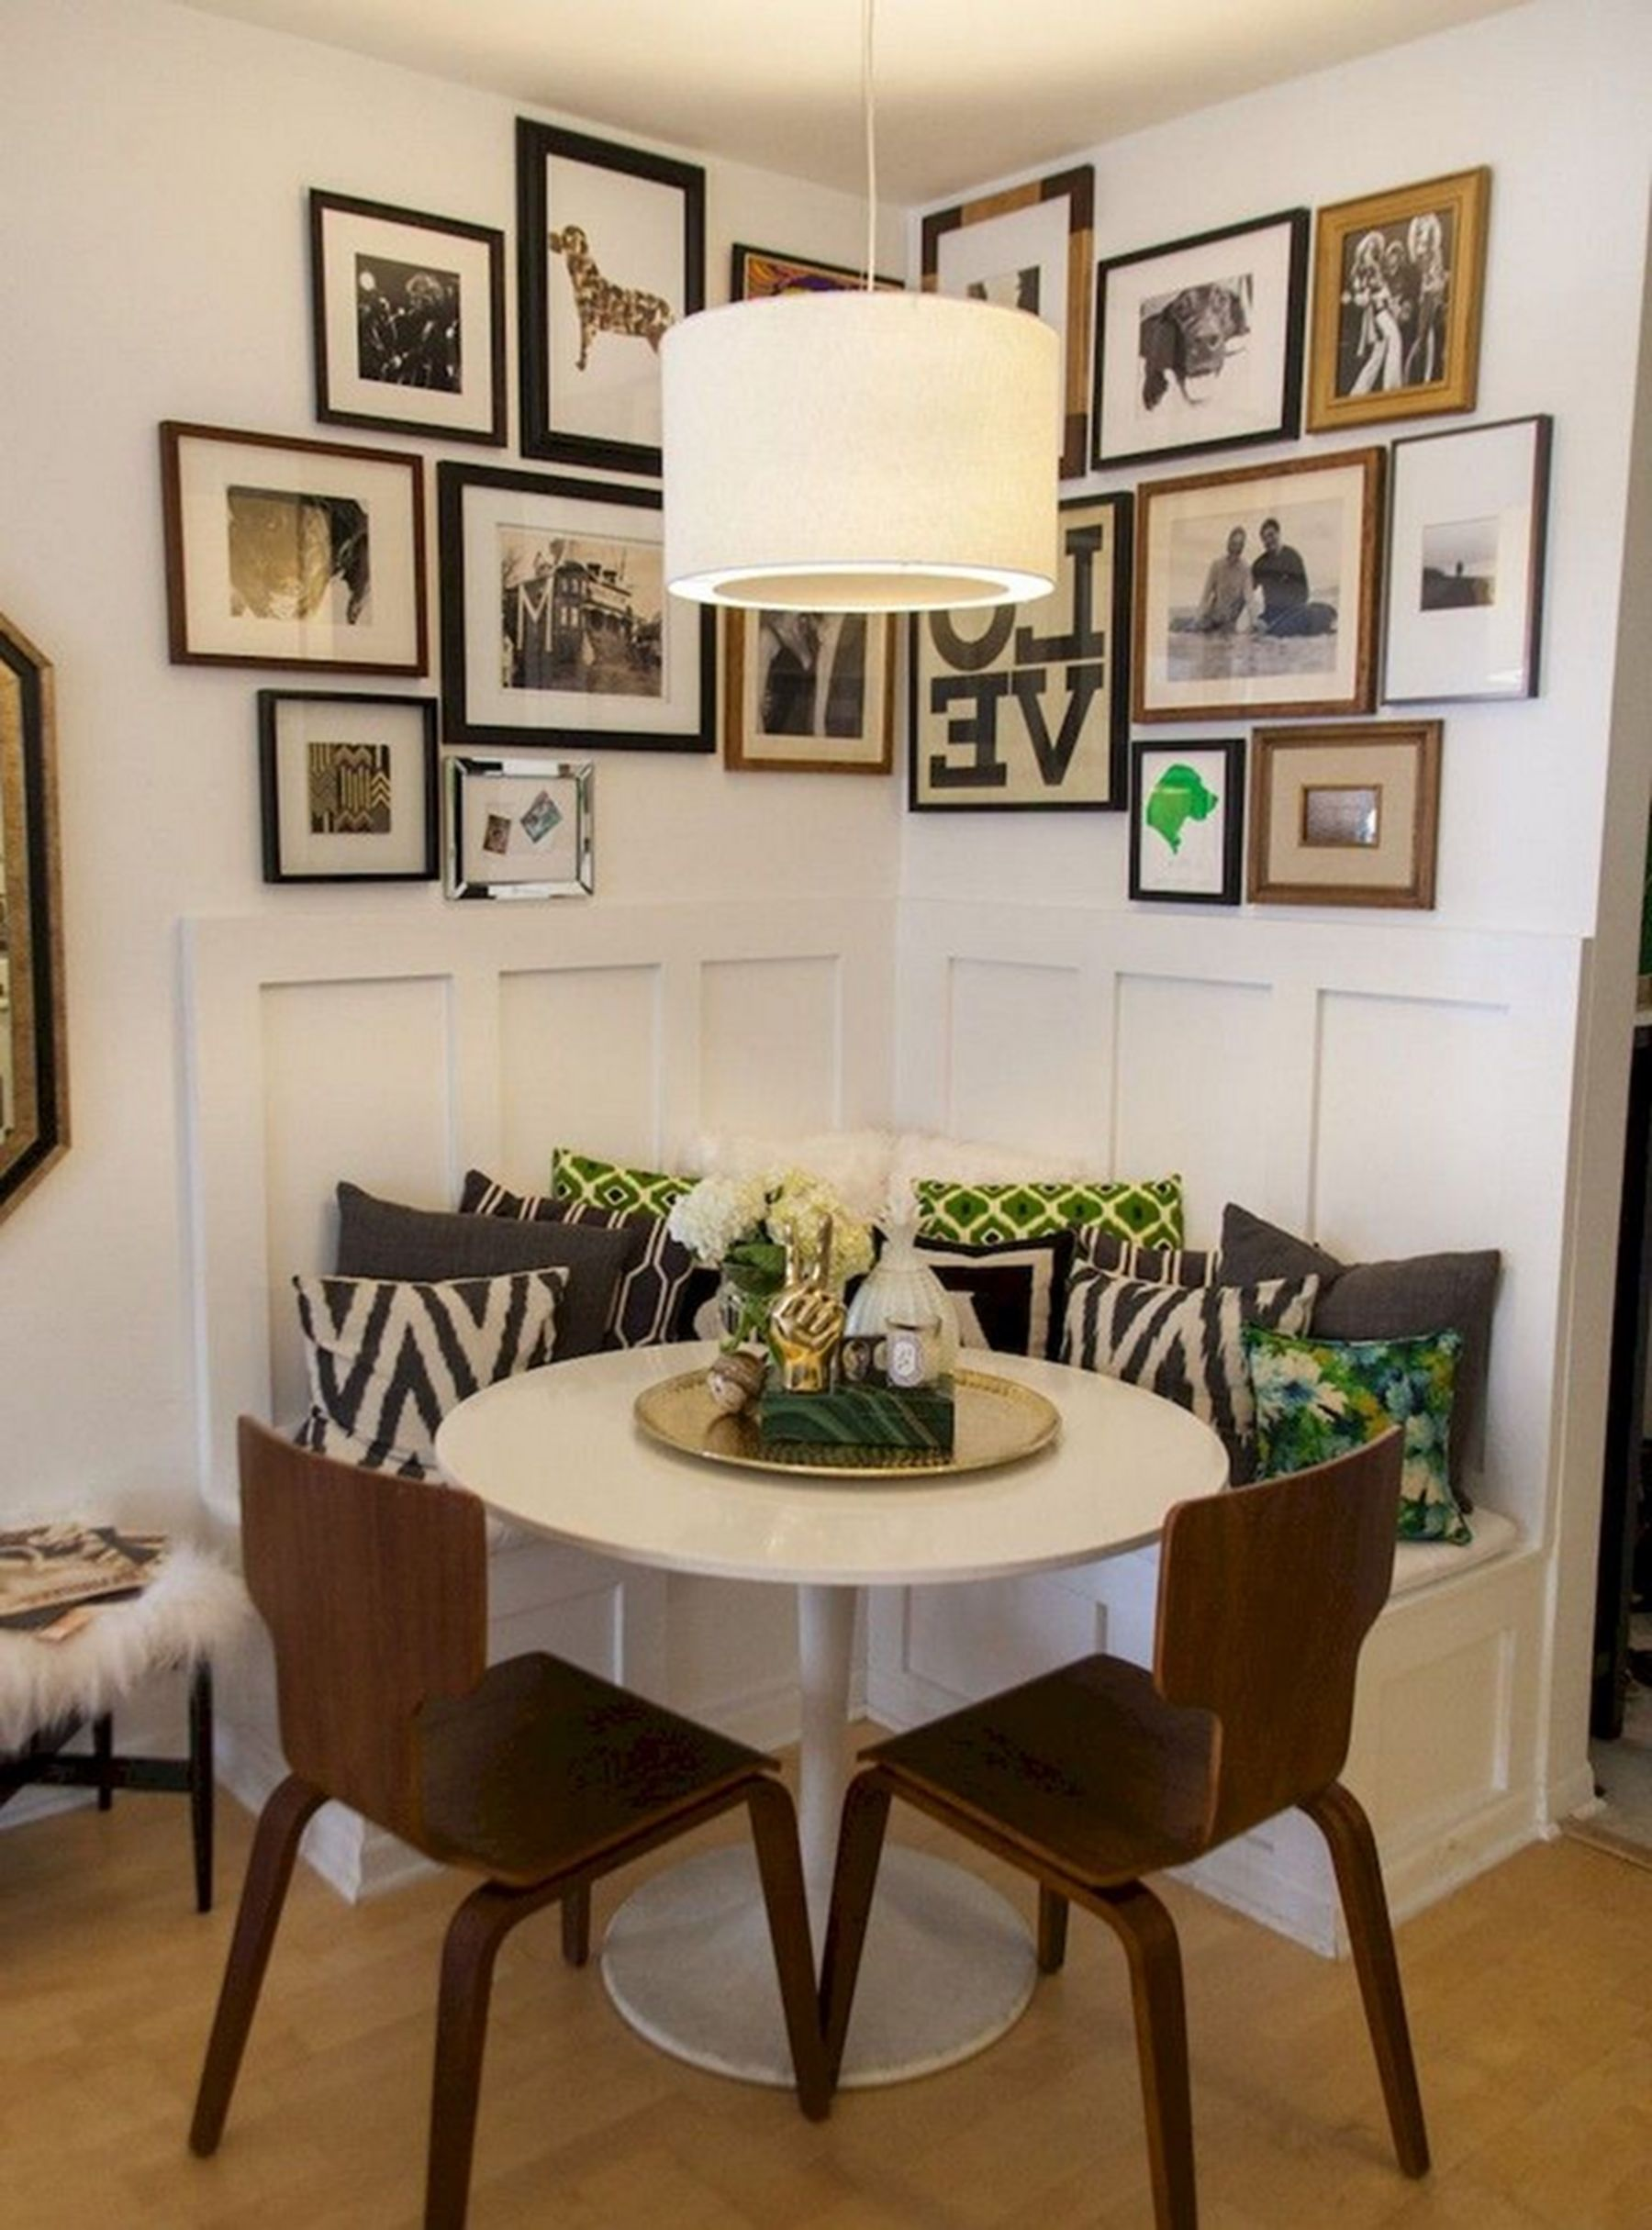 Here Is Where To Shop Vintage Lighting For Small Rooms Of The House 💡 vintage lighting Here Is Where To Shop Vintage Lighting For Small Rooms Of The House 💡 Small Dining Room Design Ideas For Many People 1